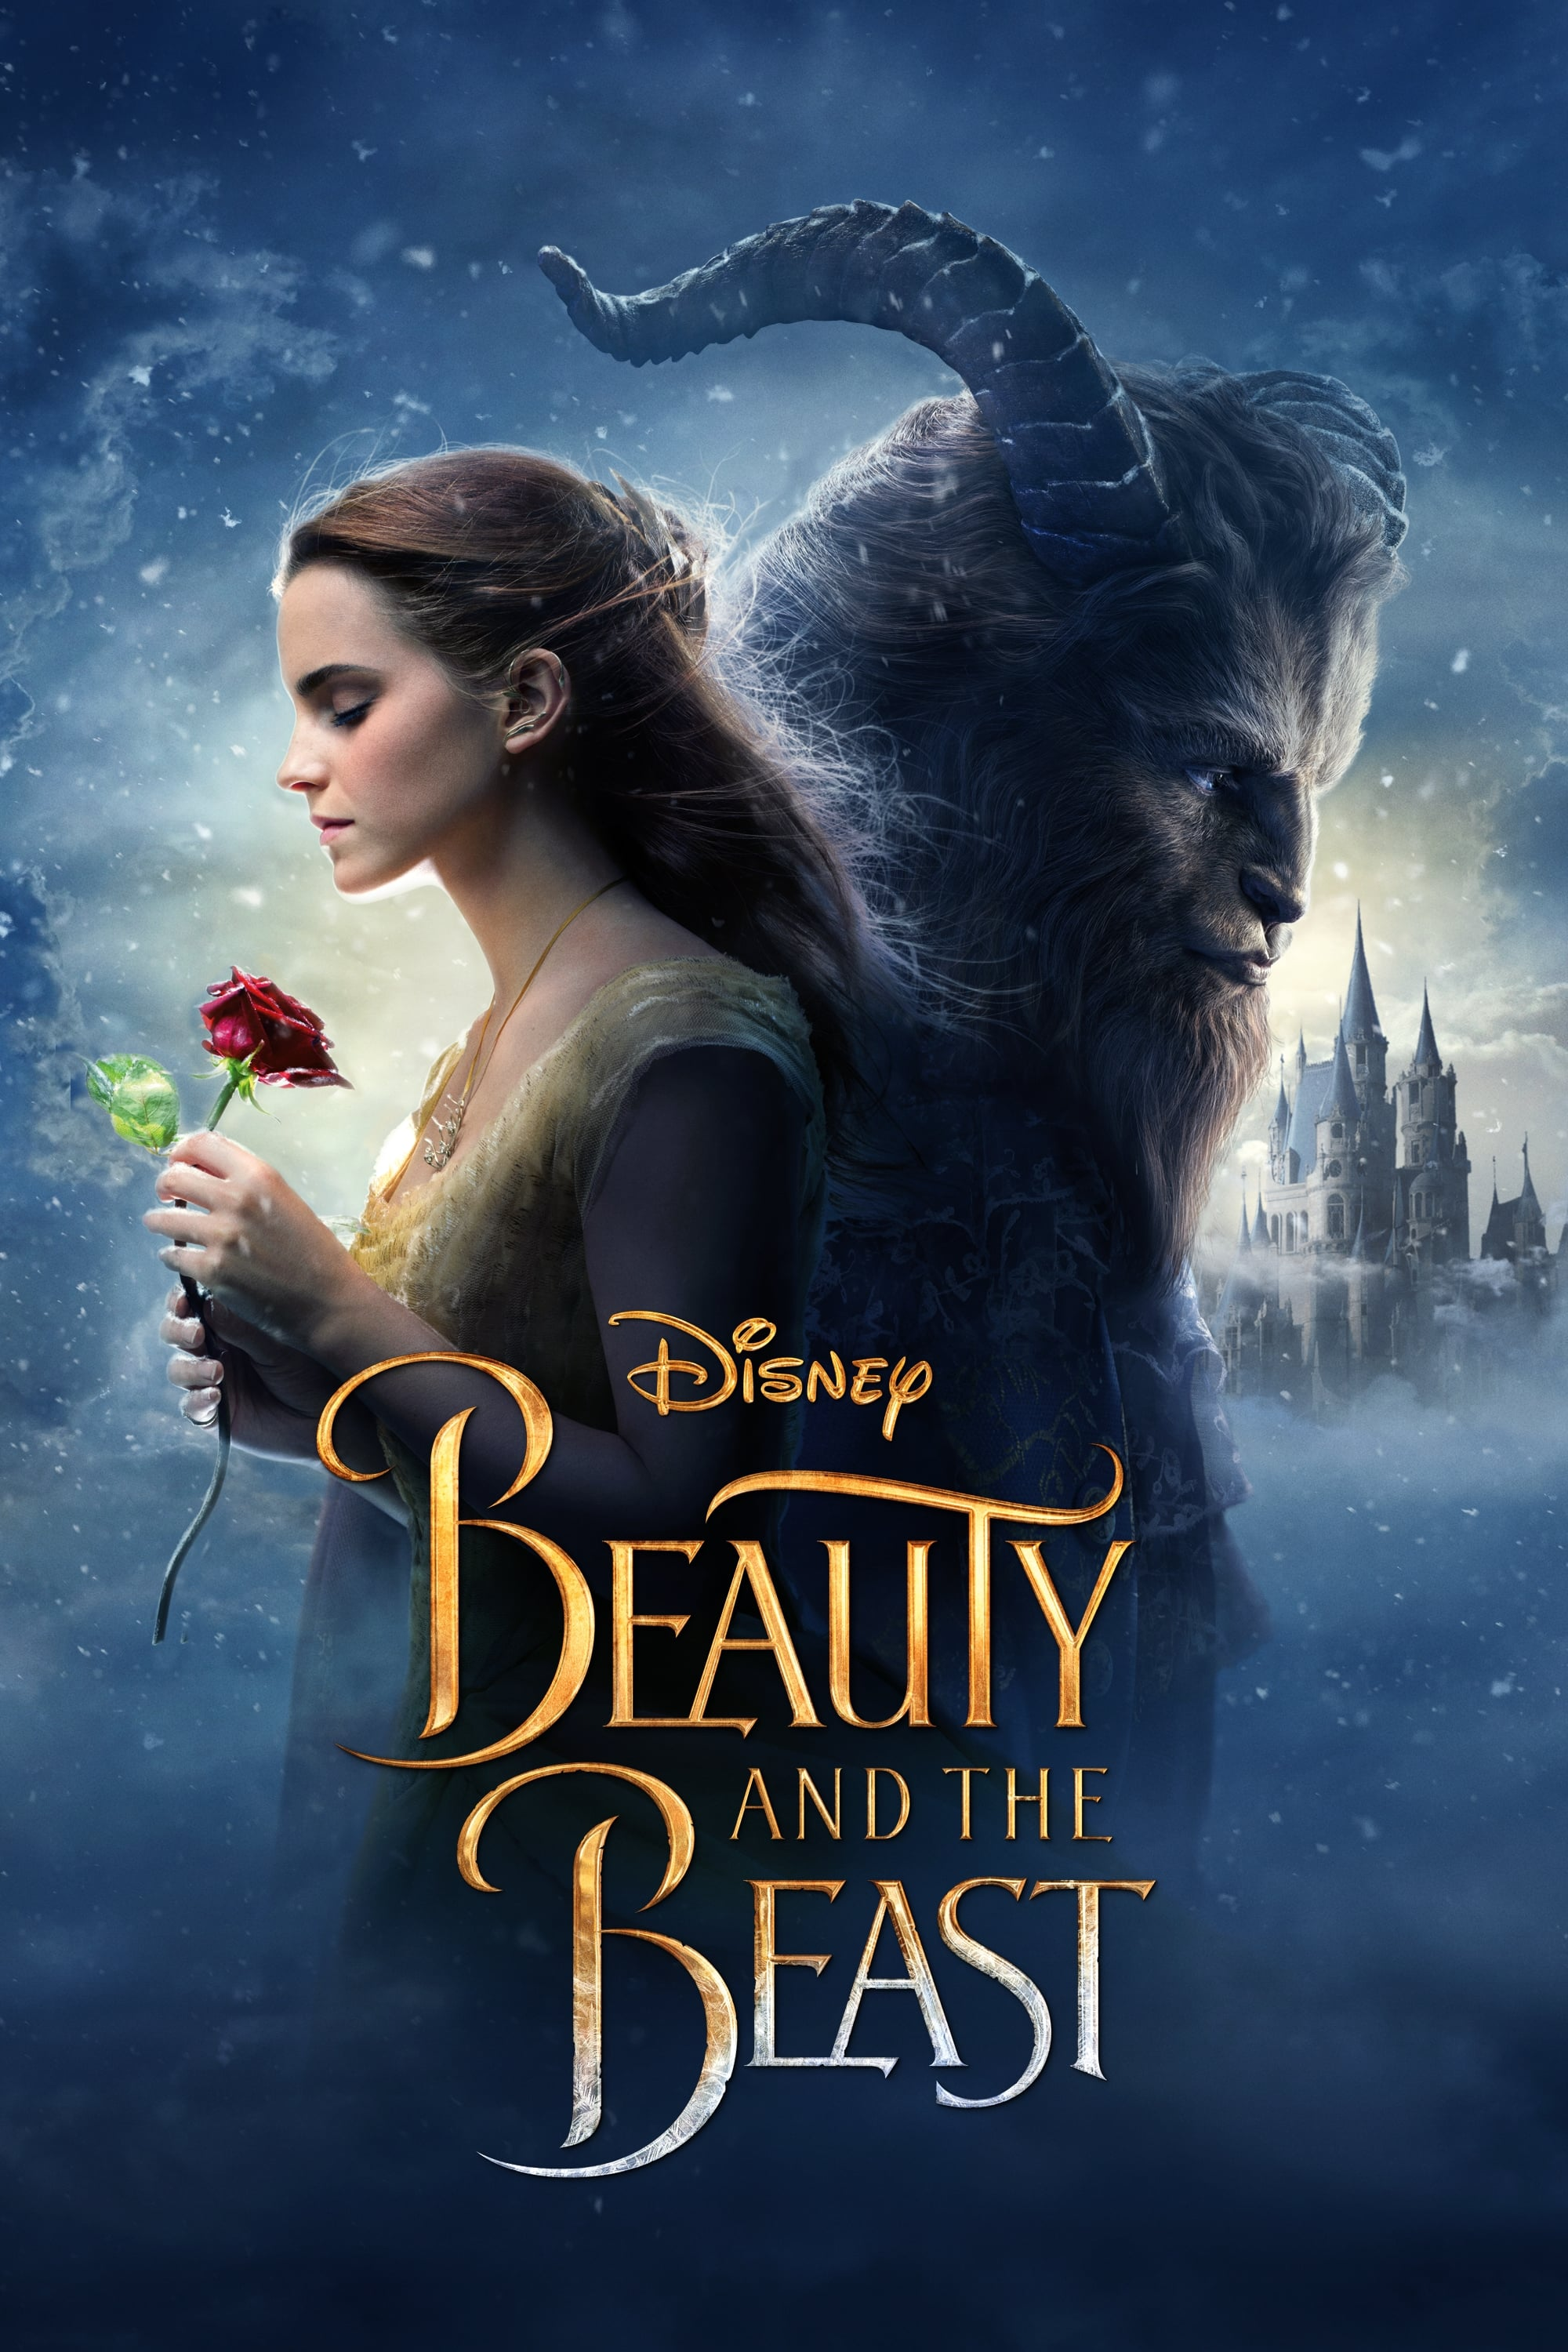 Bildergebnis für beauty and the beast 2017 poster